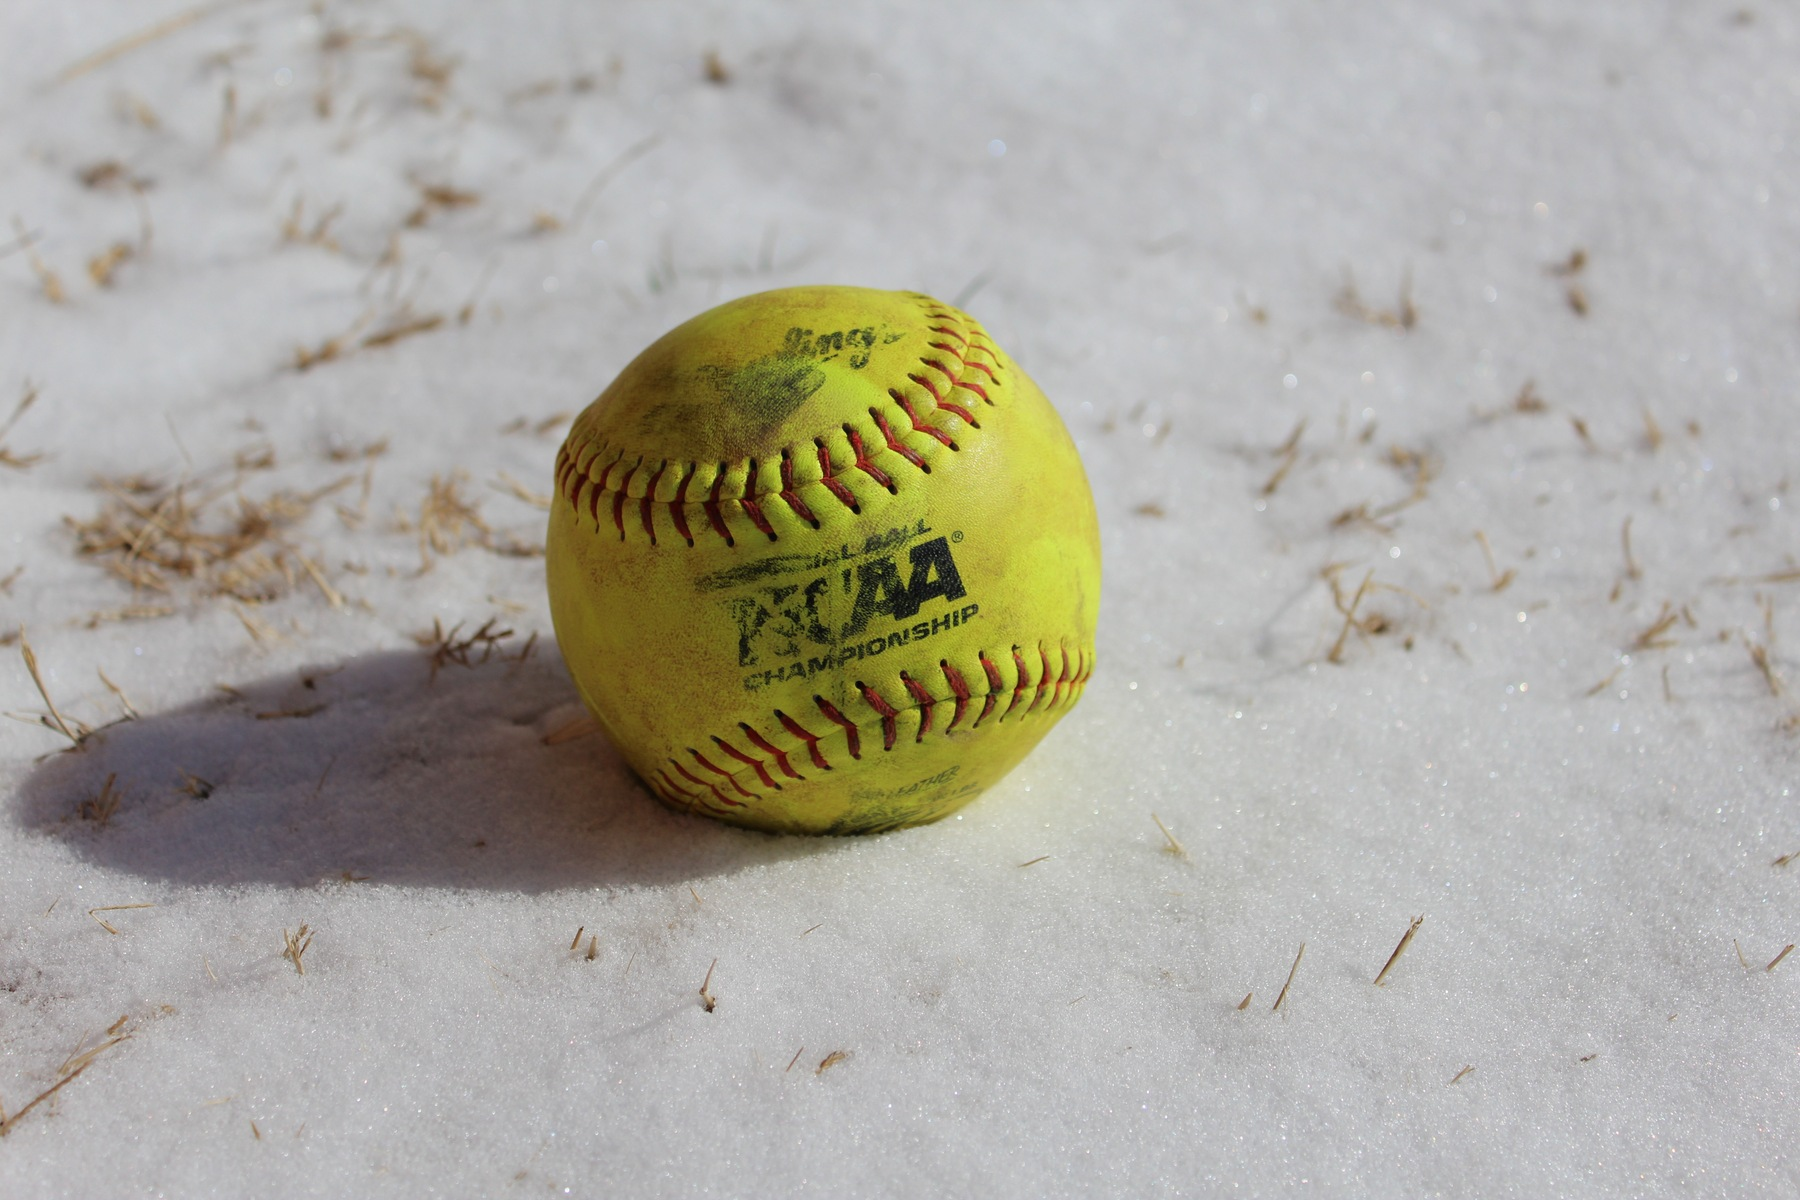 Softball in the snow.